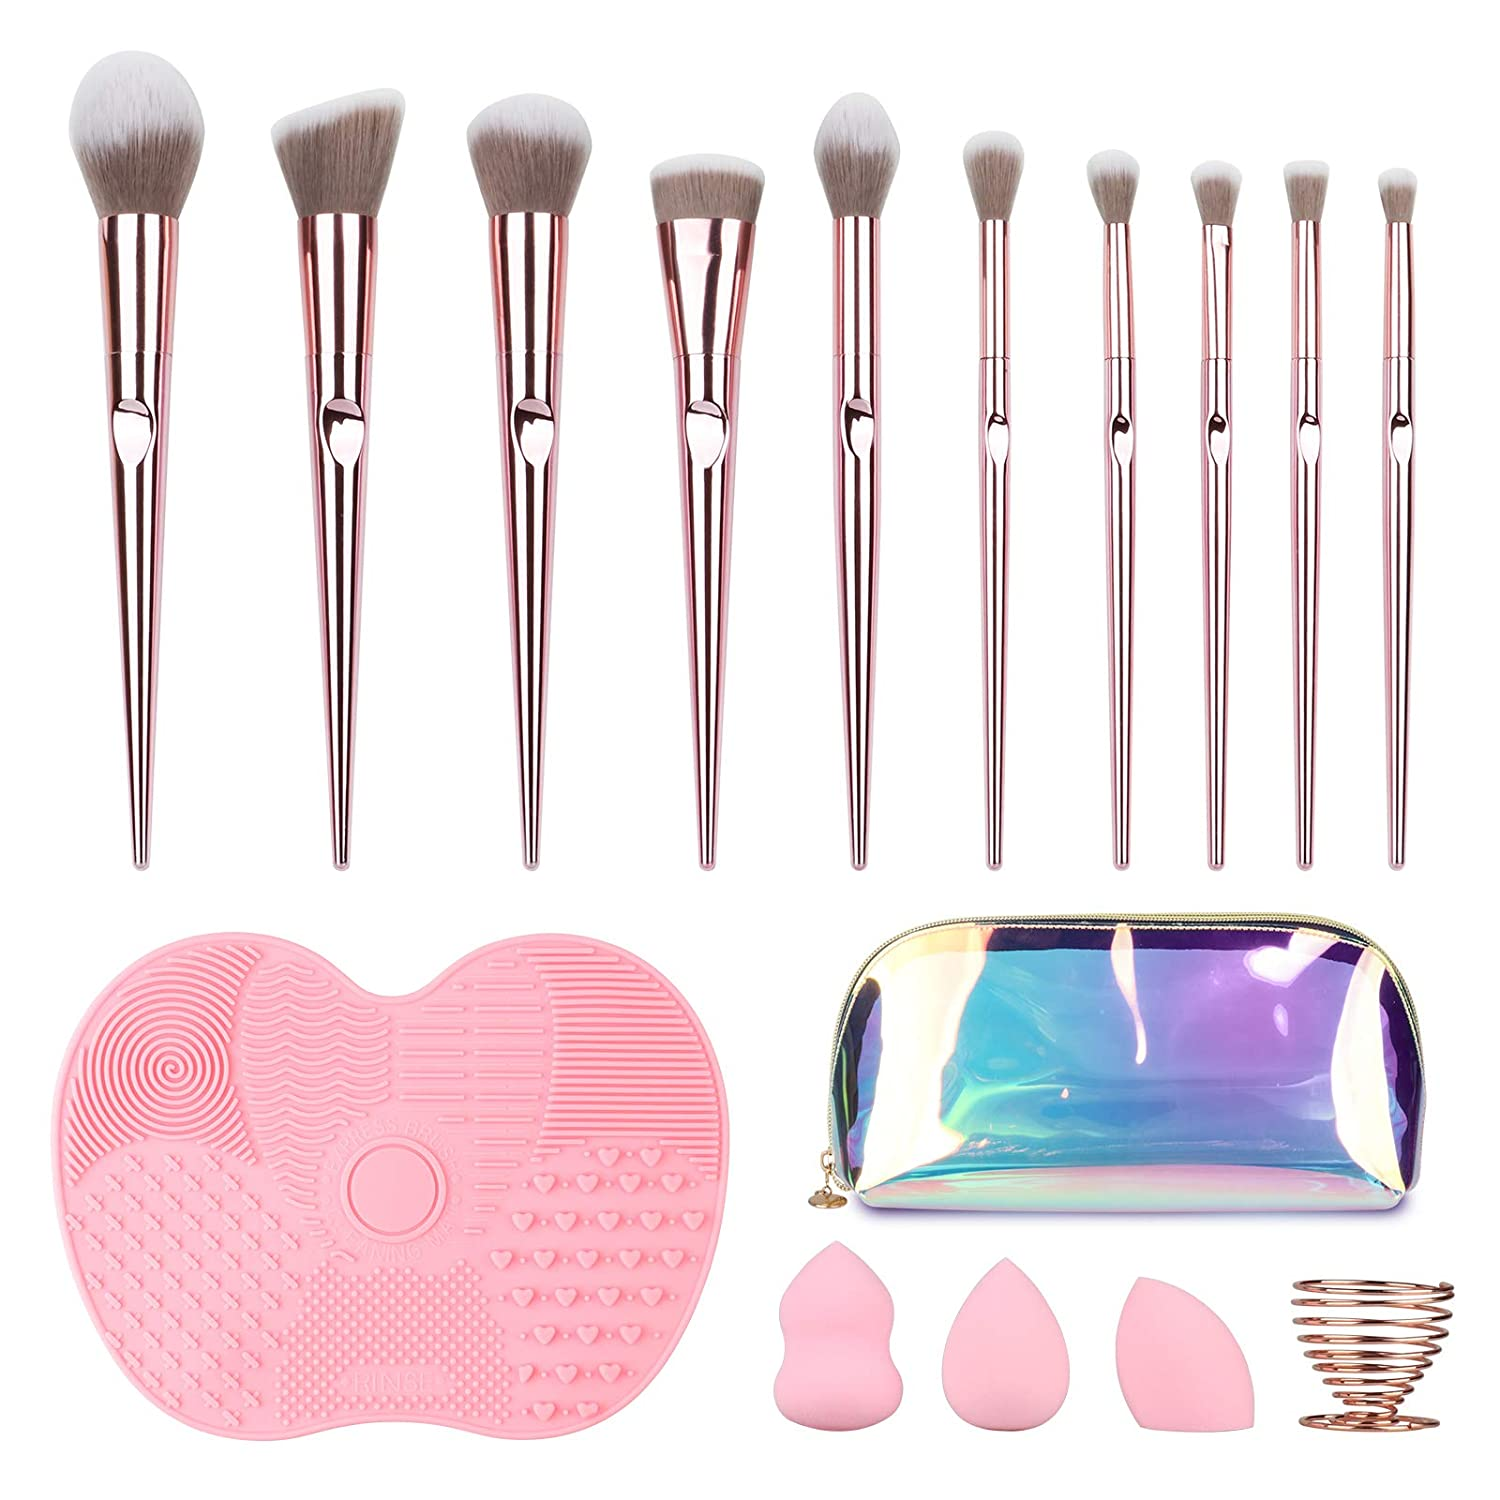 SKYTREE Makeup Brushes Set, 10Pcs Makeup Brushes & 3 Makeup Sponges & 1 Brush Cleaner & 1 Sponge Holder with TPU Case, Foundation Brushes Blending Face Powder Eye Shadows Make Up Brushes Tool (Pink)